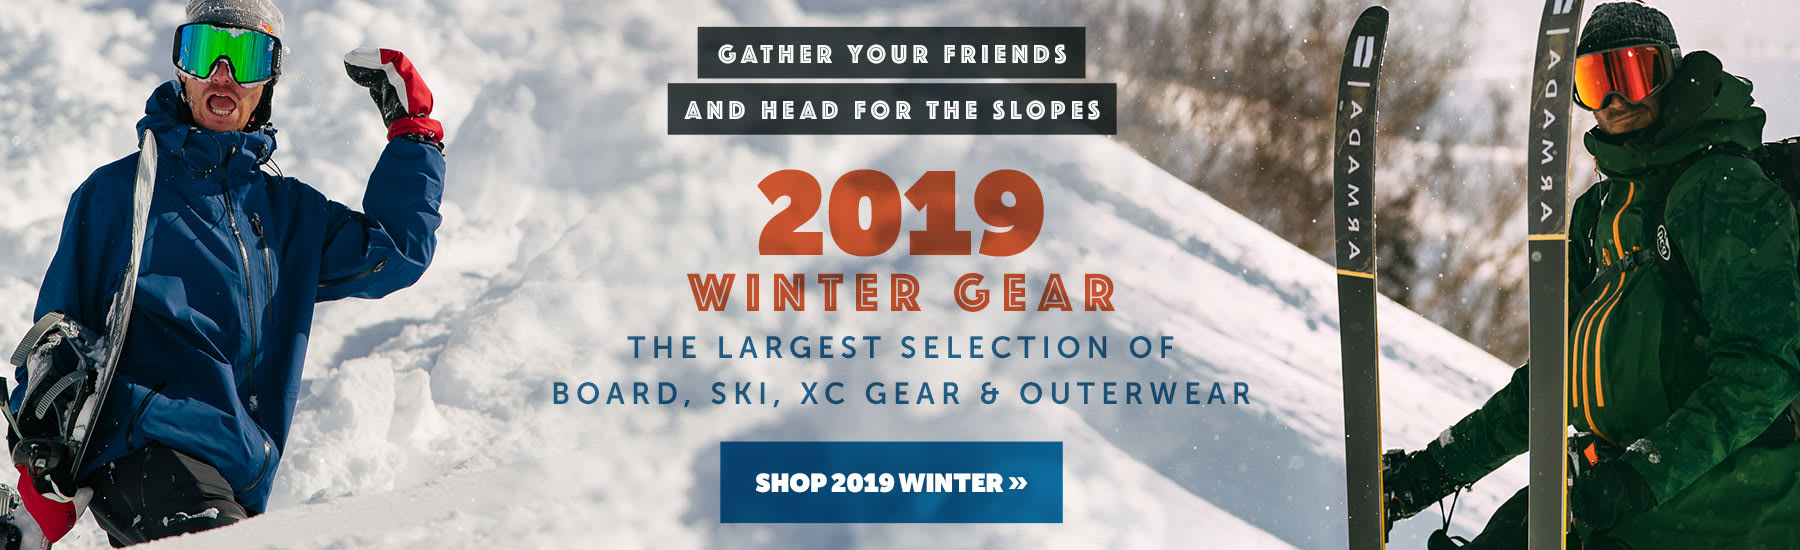 Shop 2019 Winter Gear